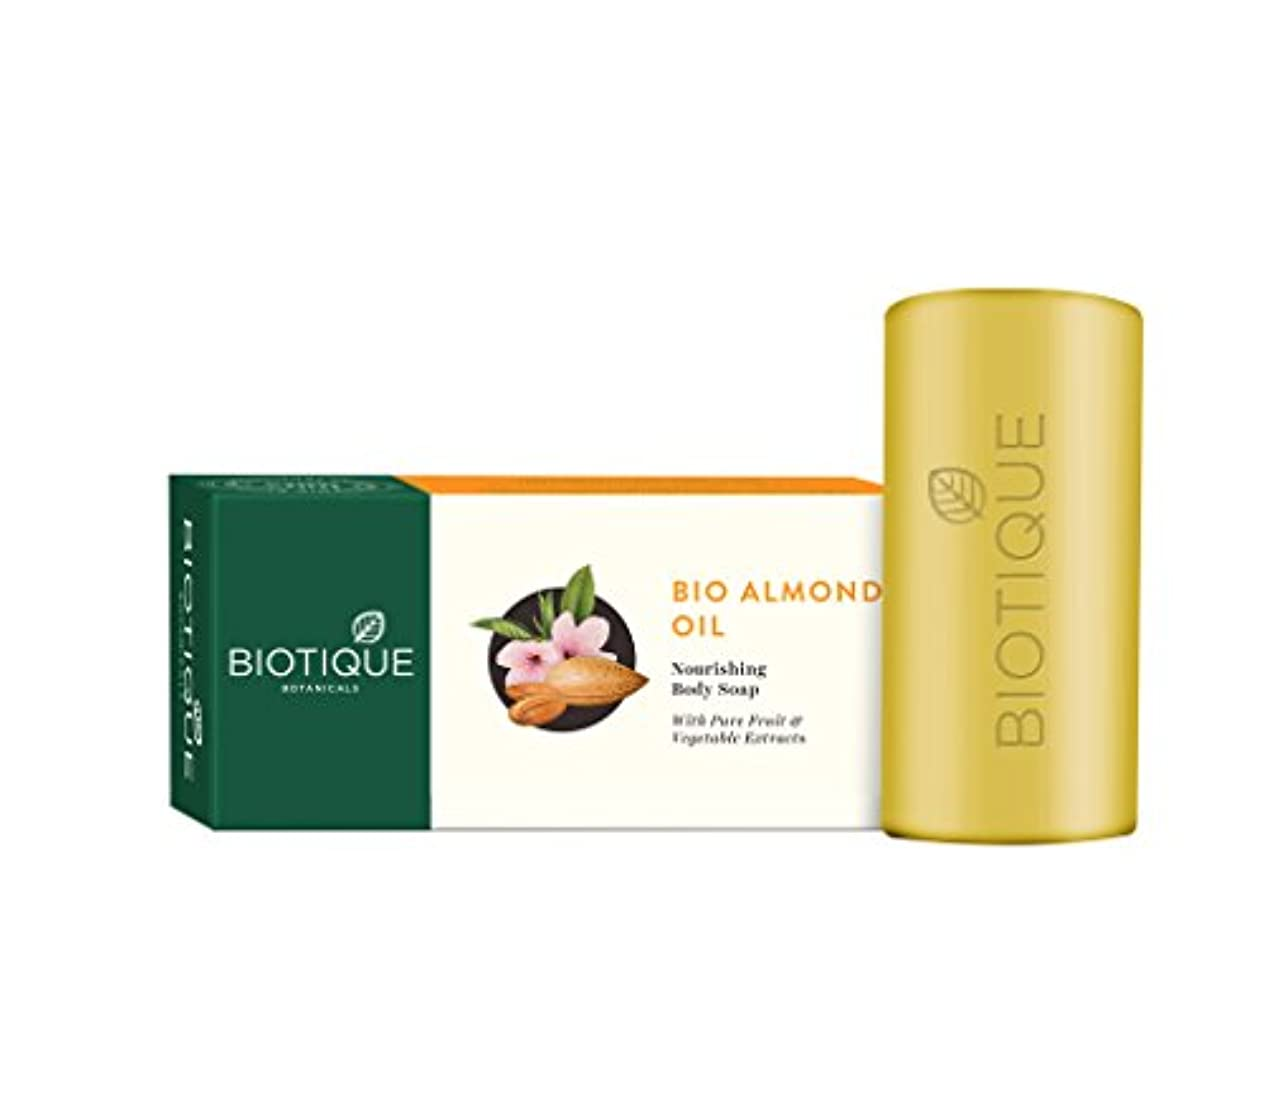 いちゃつく夜明け亡命Biotique Pure Vegetable Cleanser - Almond Oil Soap 150g